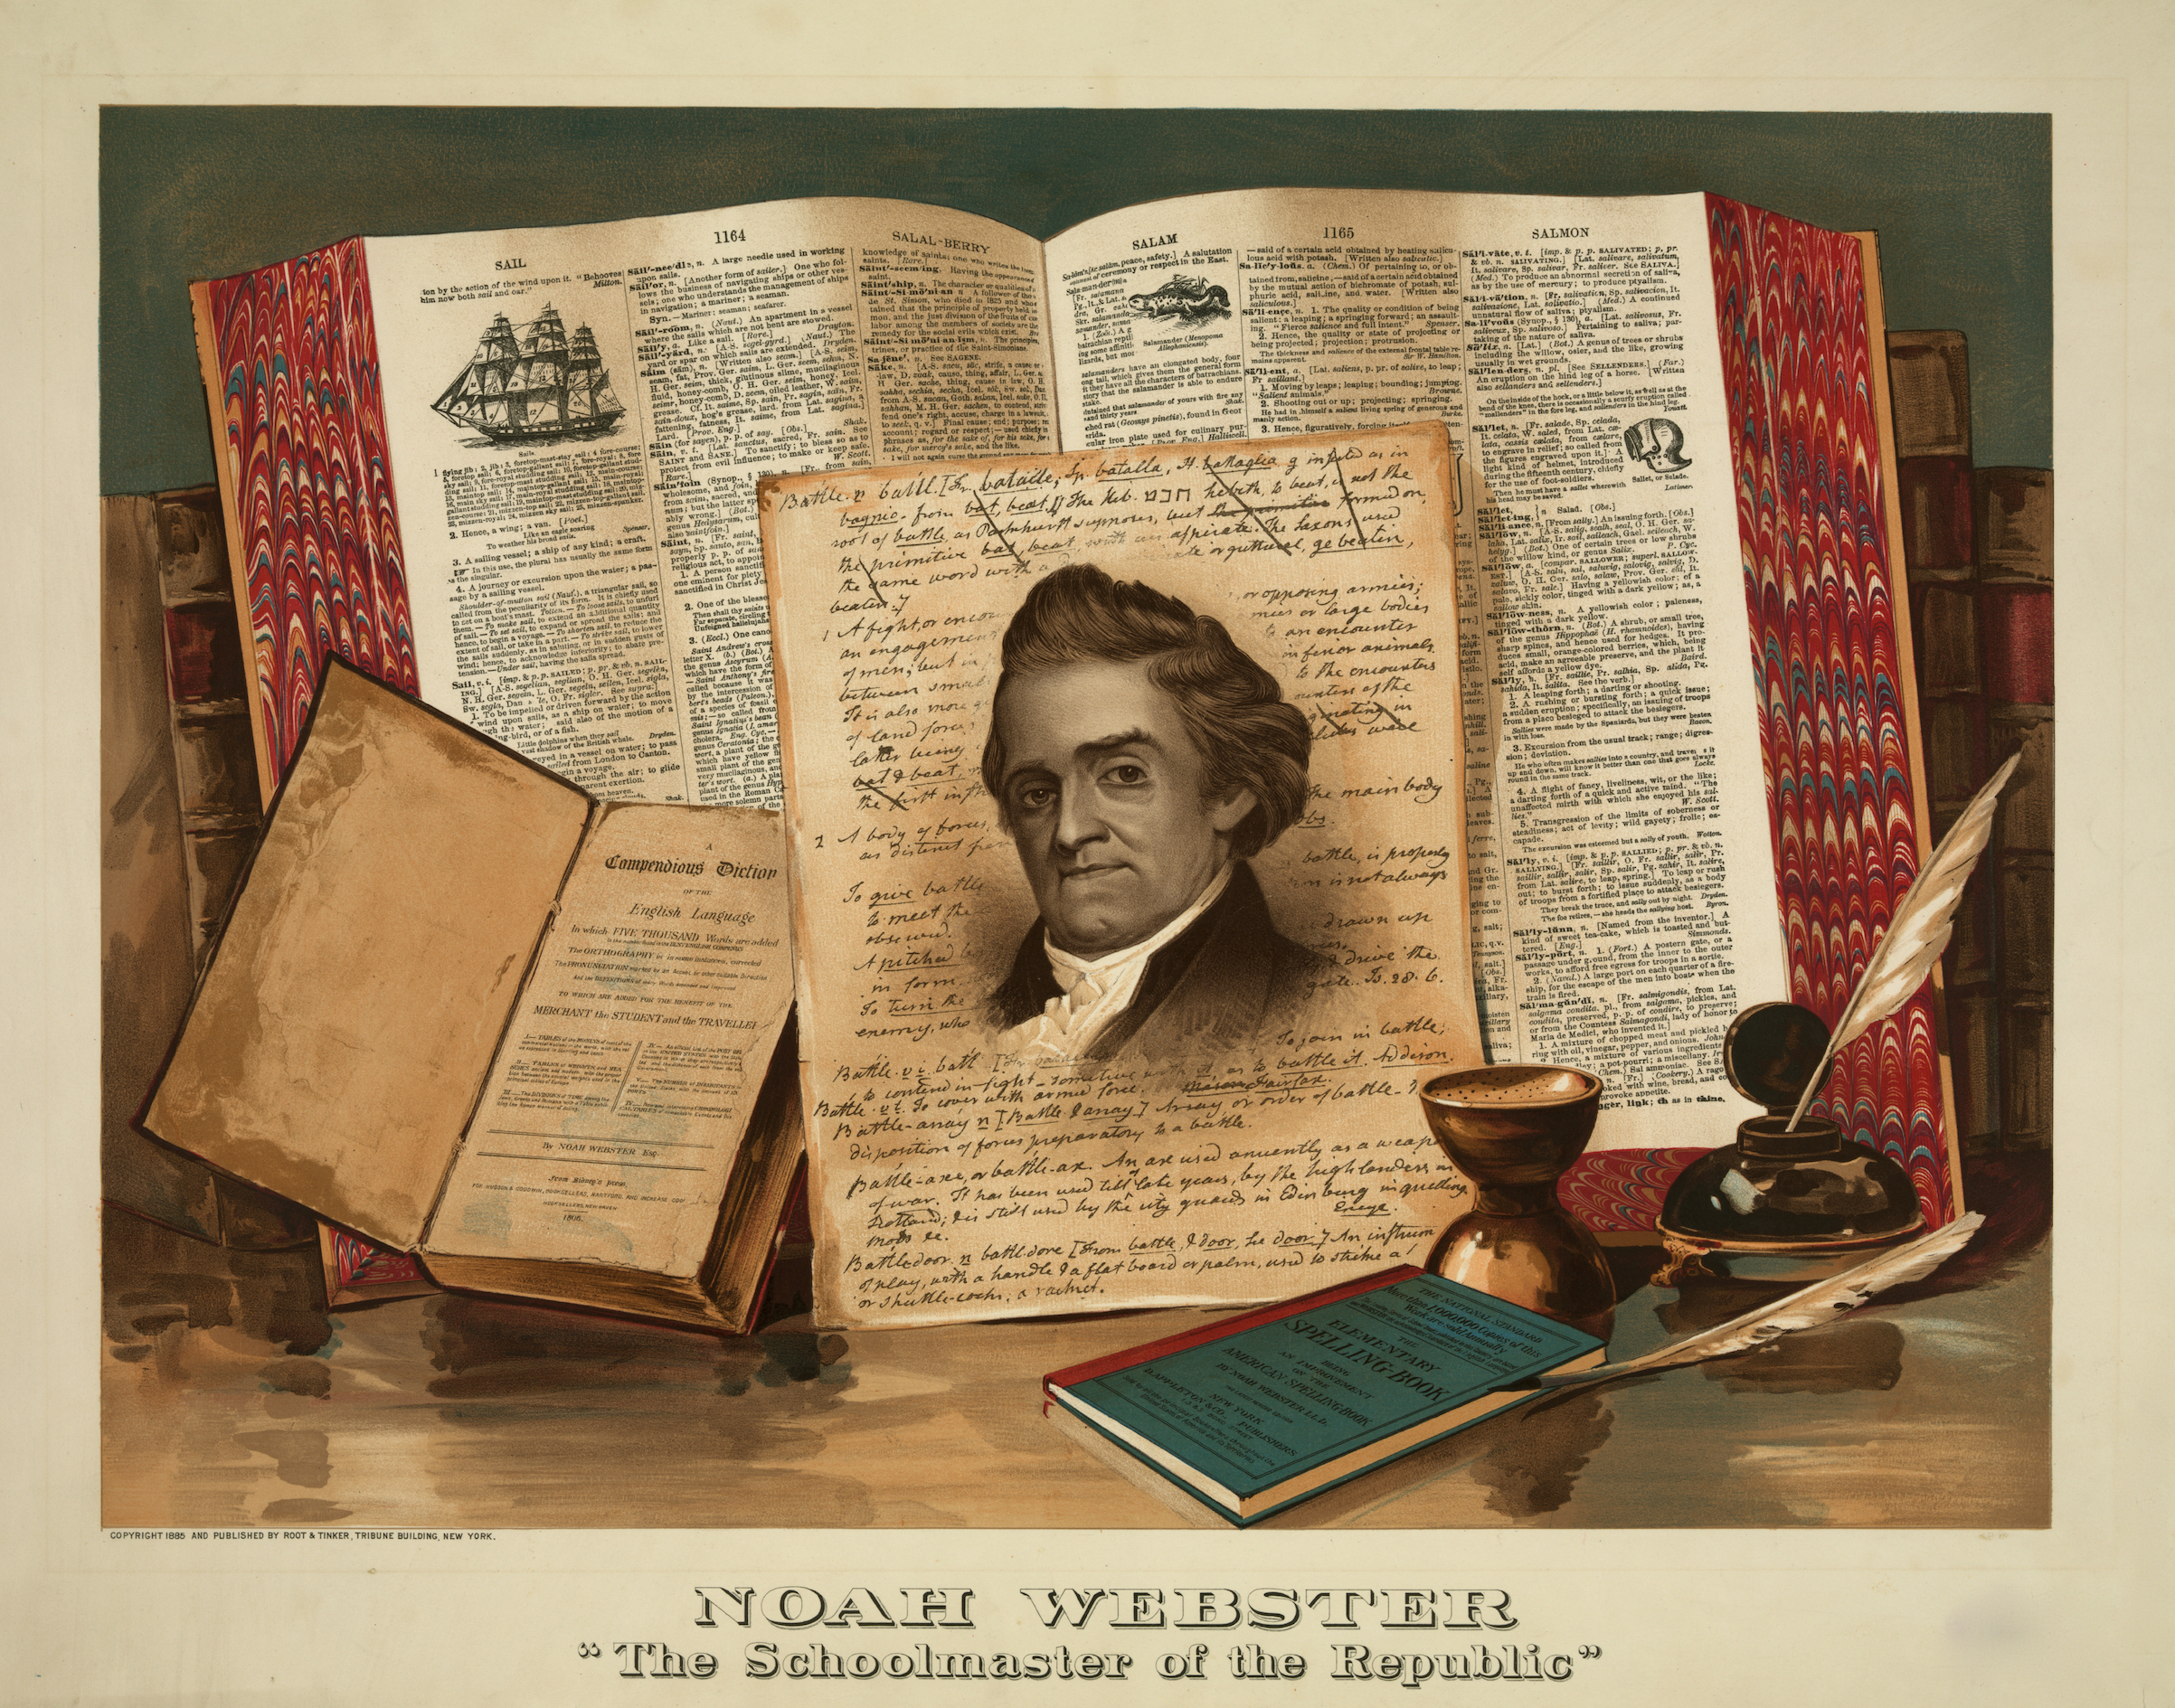 Noah Webster. Born 1758-died 1843. The schoolmaster of the republic; portrait shown in front of dictionary, books, inkwell & desk, 19th century.